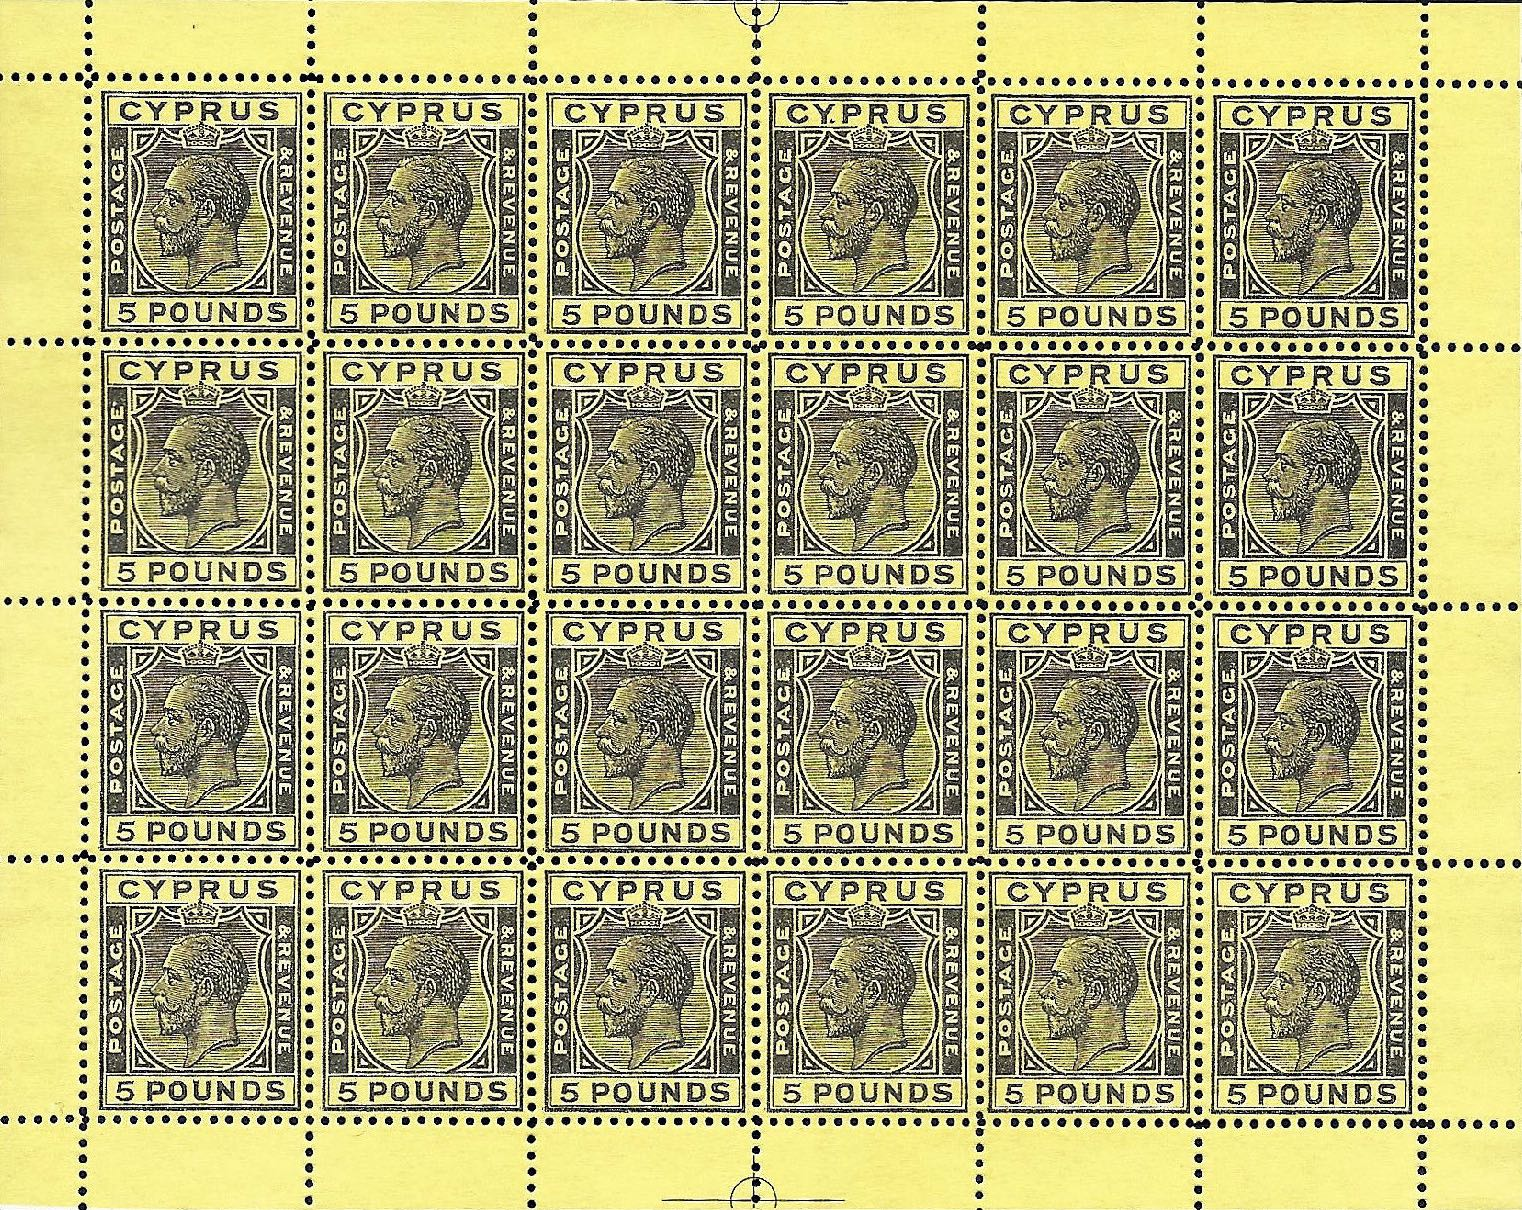 Cyprus_King-George_5pound_Sheet_Forgery